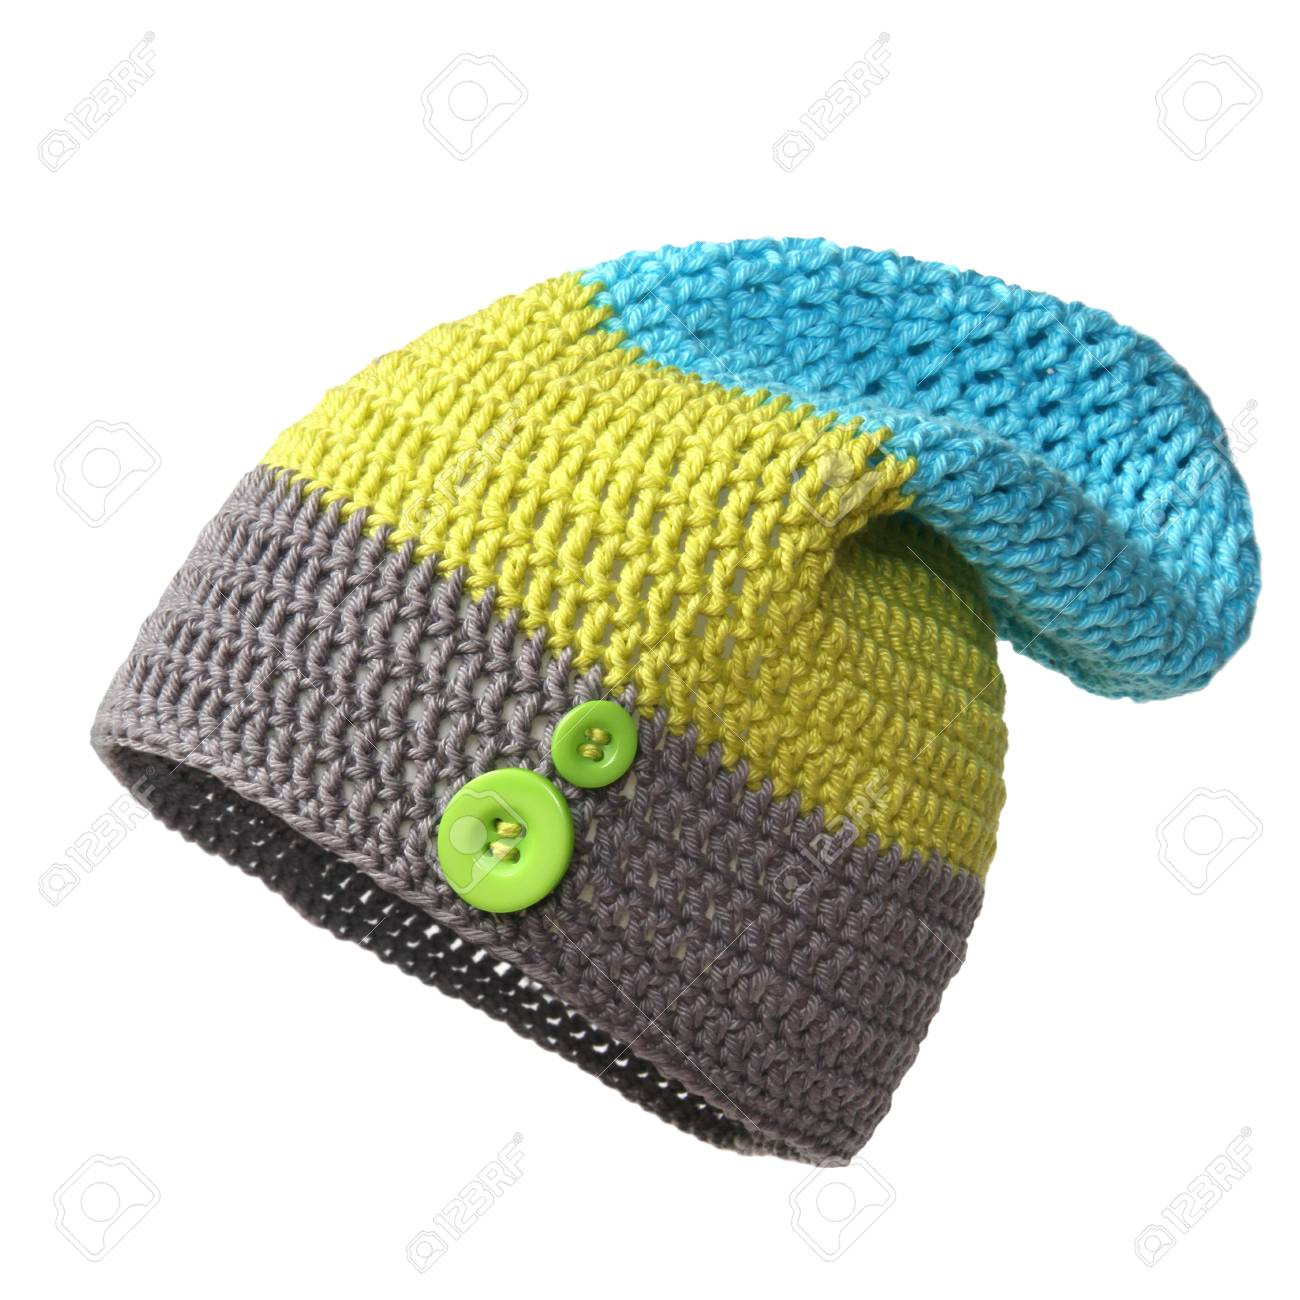 b6069345 Crocheted Hat Isolated On White Background Stock Photo, Picture And ...